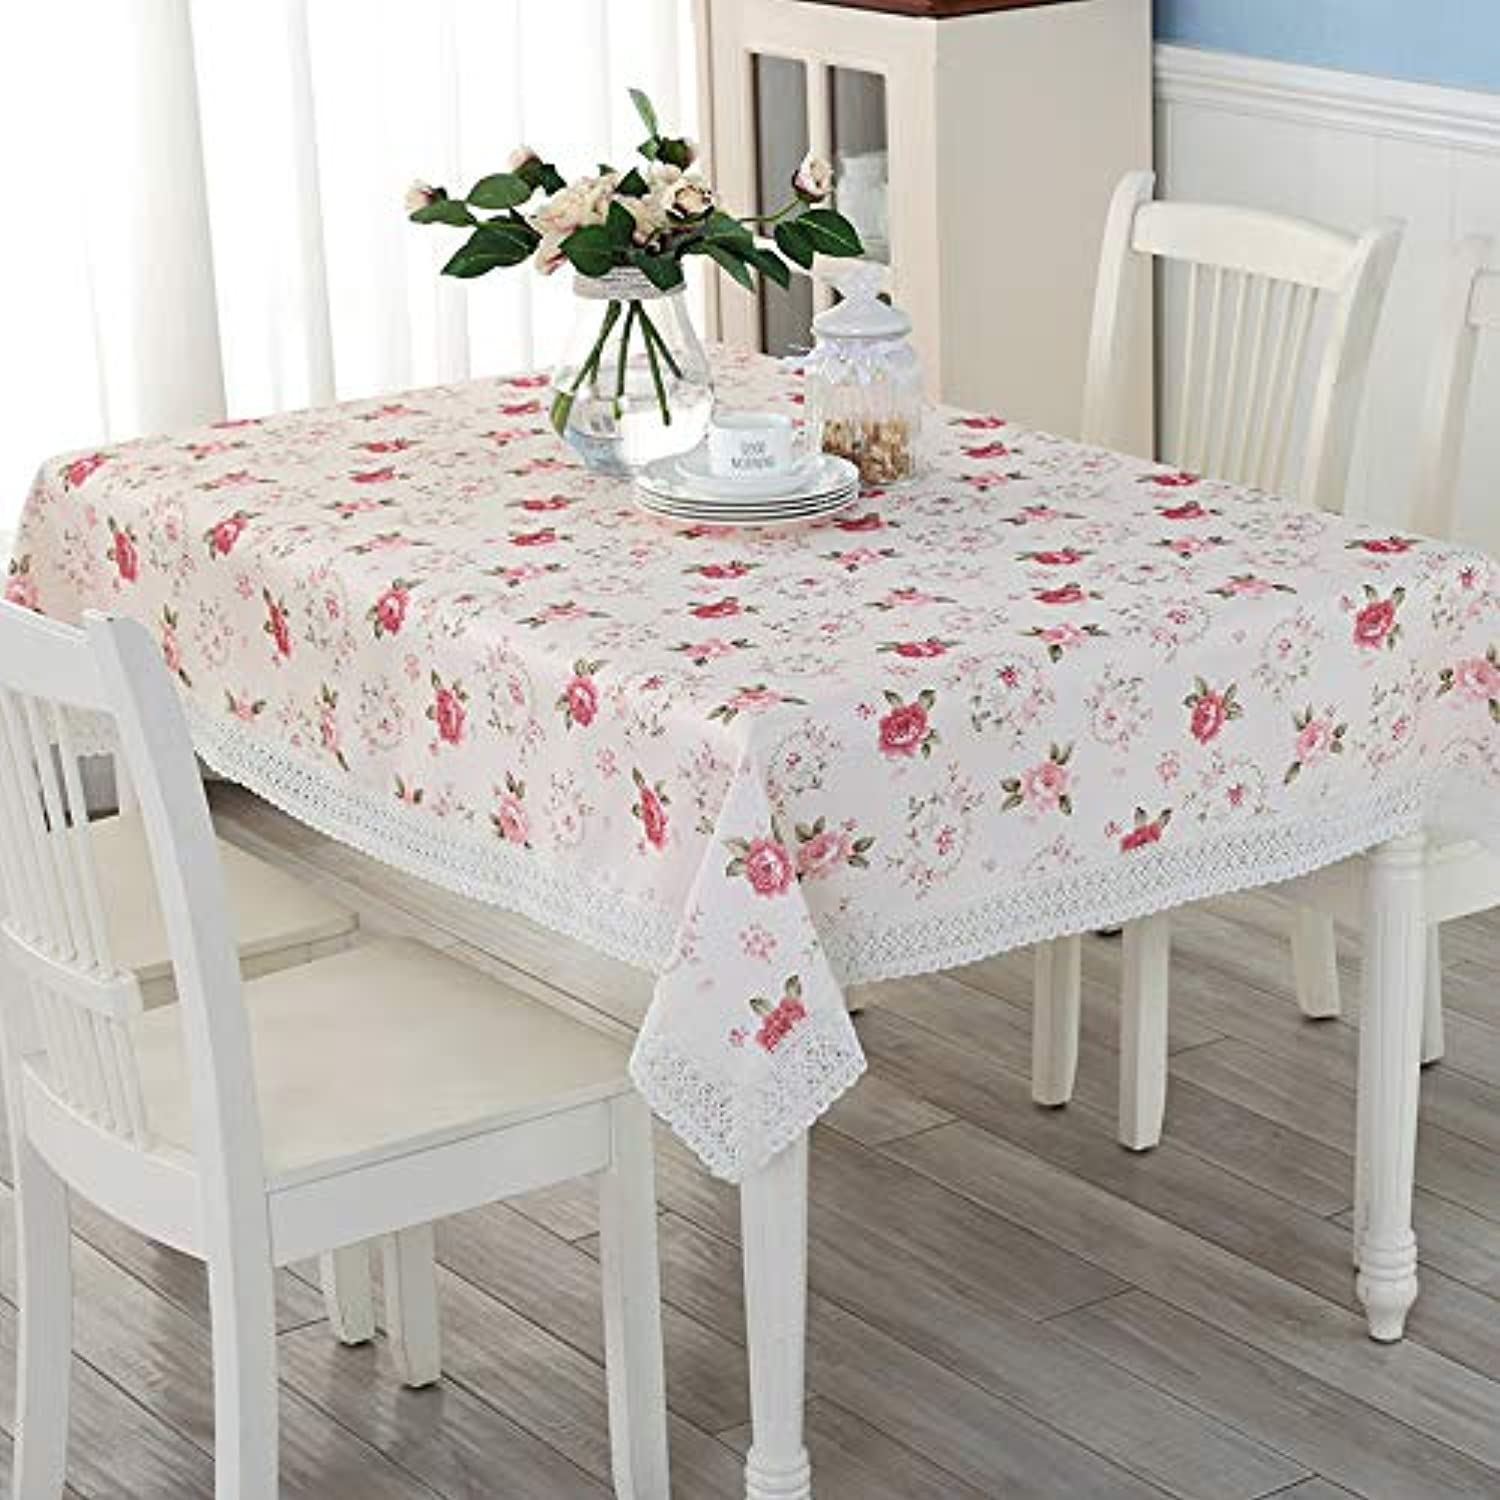 Creek Ywh Table cloth fabric cotton linen garden linen tablecloth tablecloth coffee table rectangular cover towel square scarf, pink blossoming  pink, 140140cm